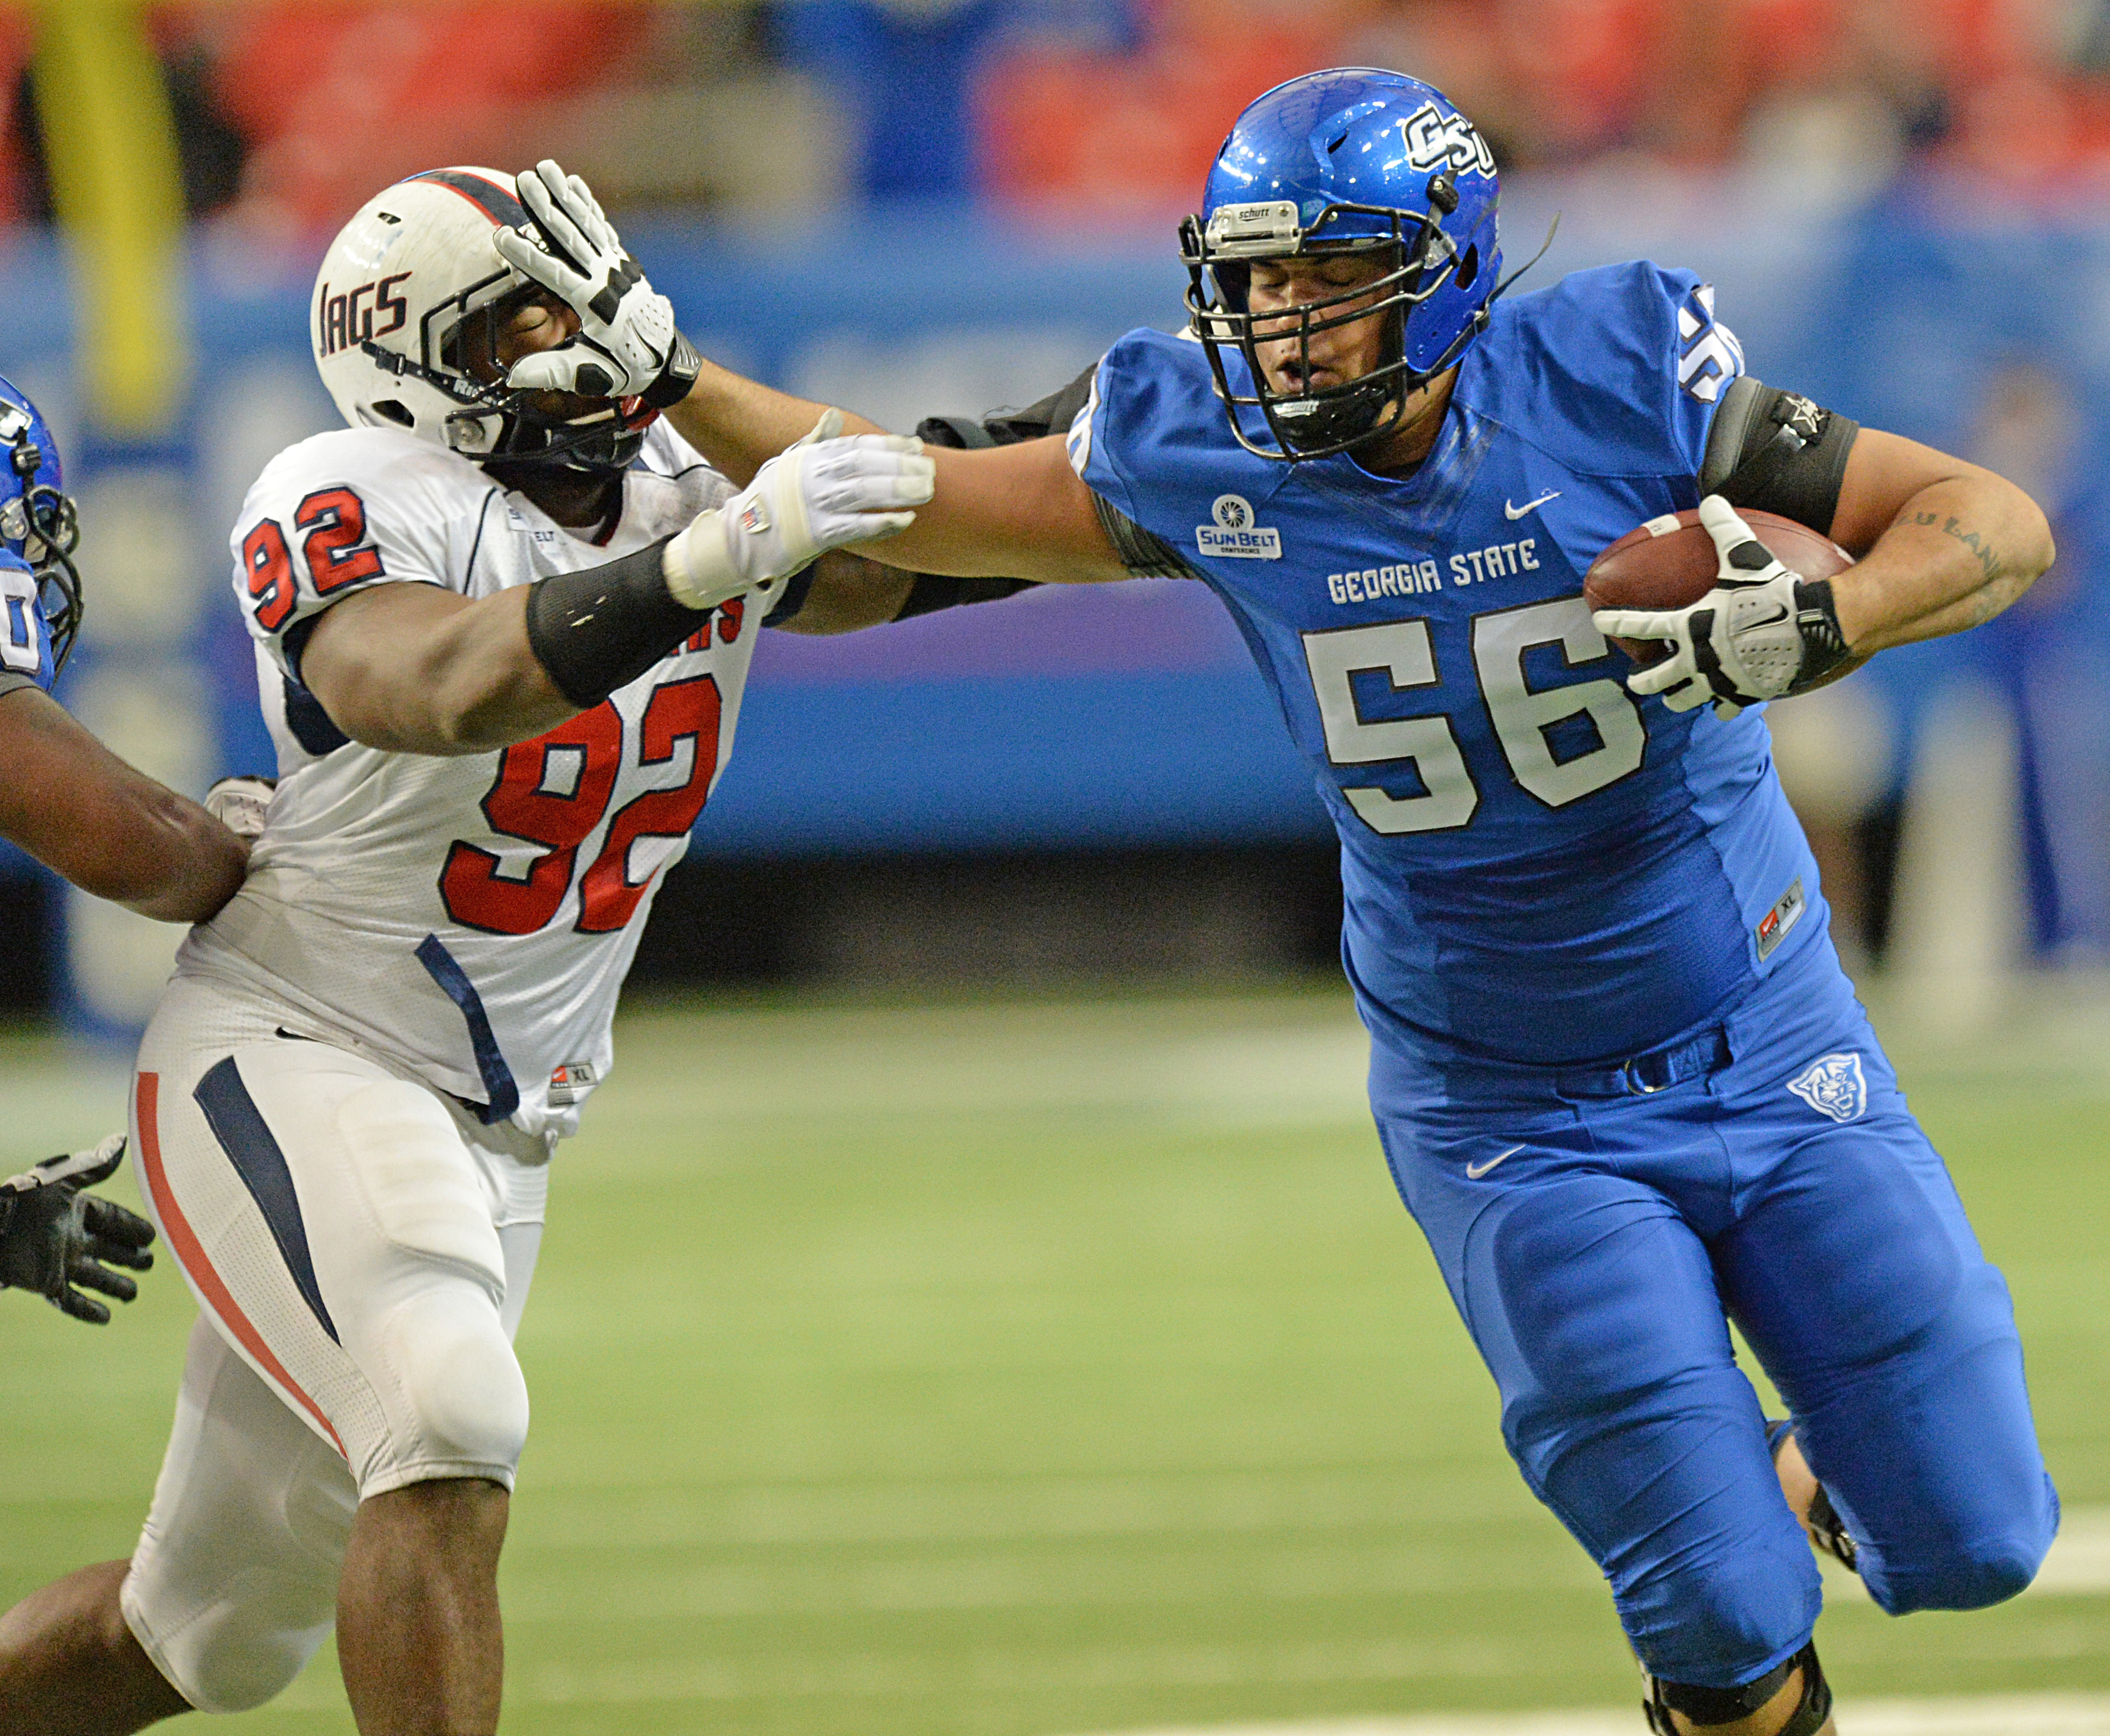 Colts take GSU's Ulrick John; Wilson signs with Chiefs